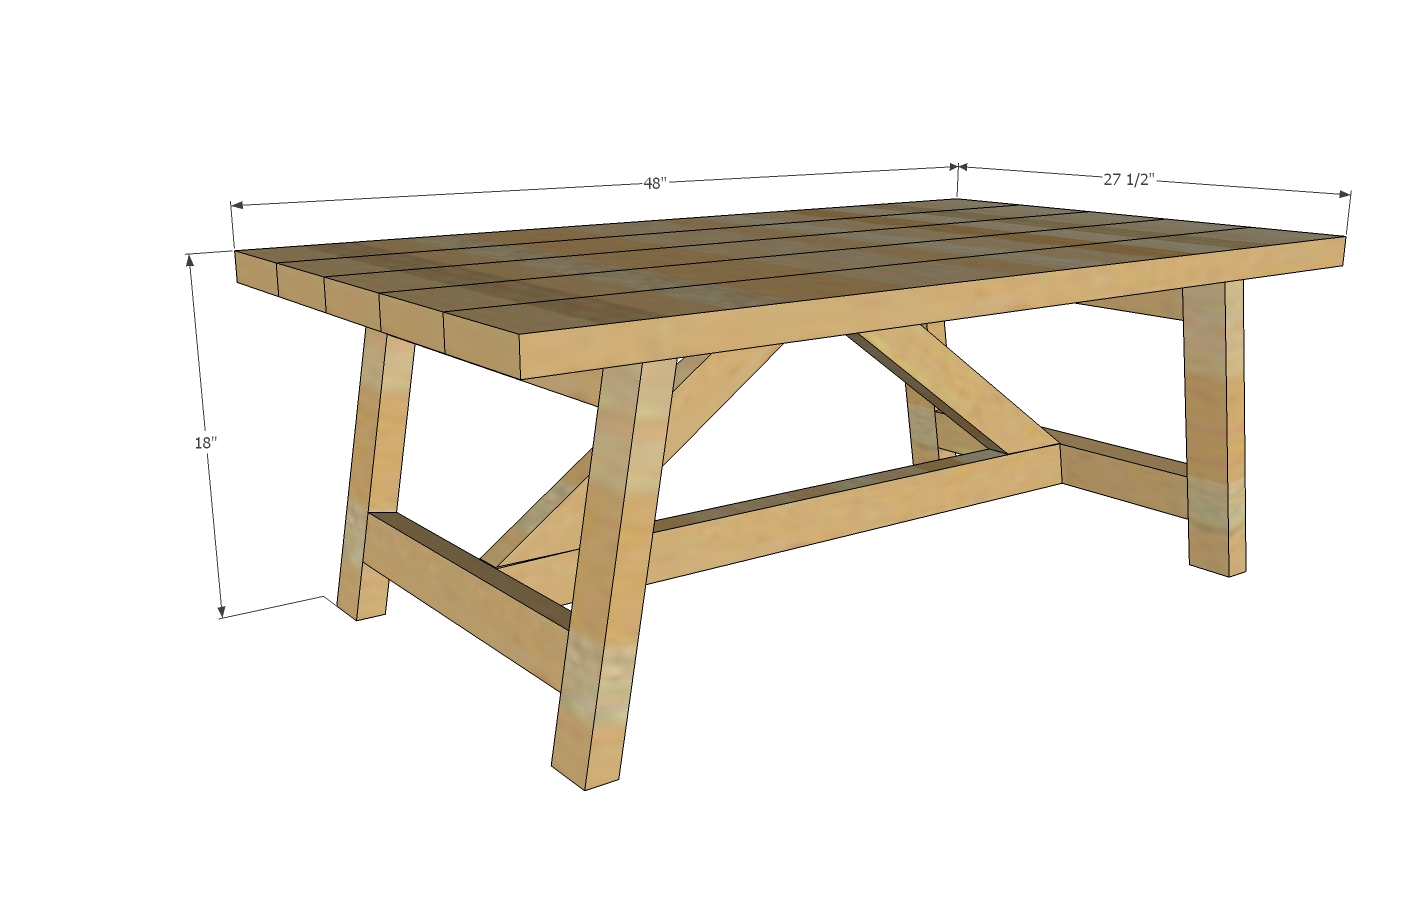 Woodworking Table Plans | Table Plans PDF Download